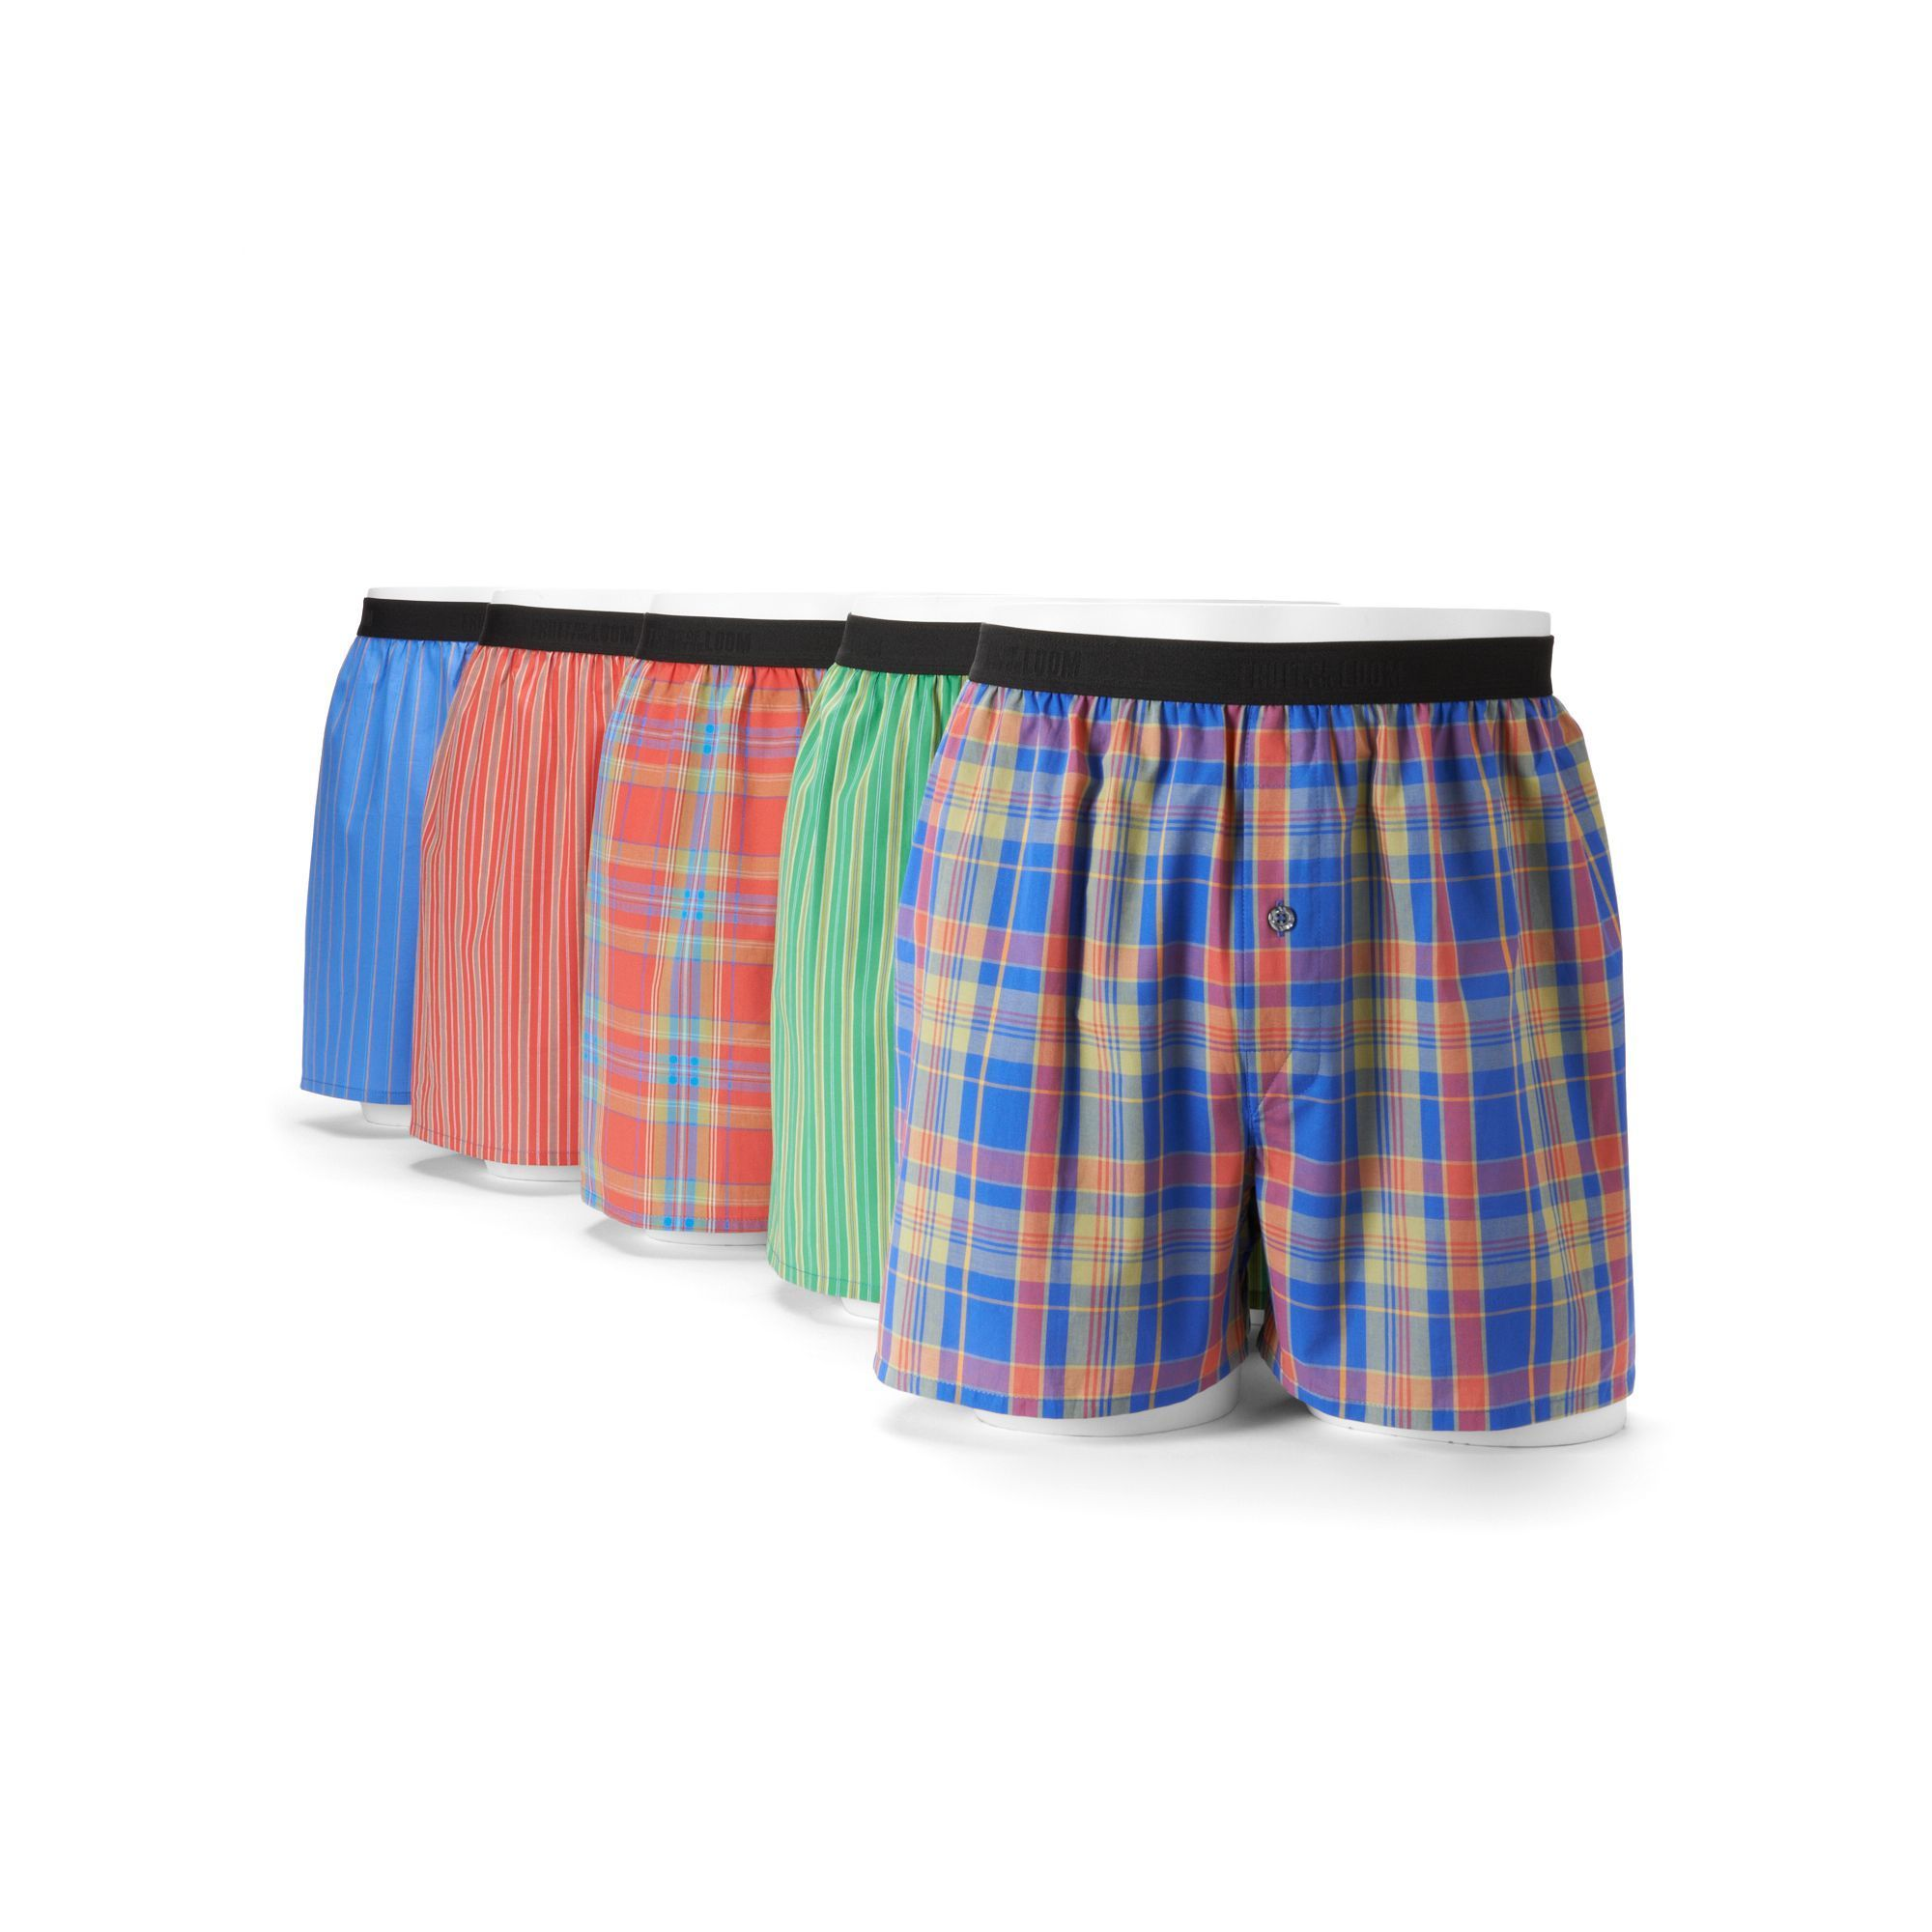 Men's Fruit of the Loom Signature 5pack RelaxedFit